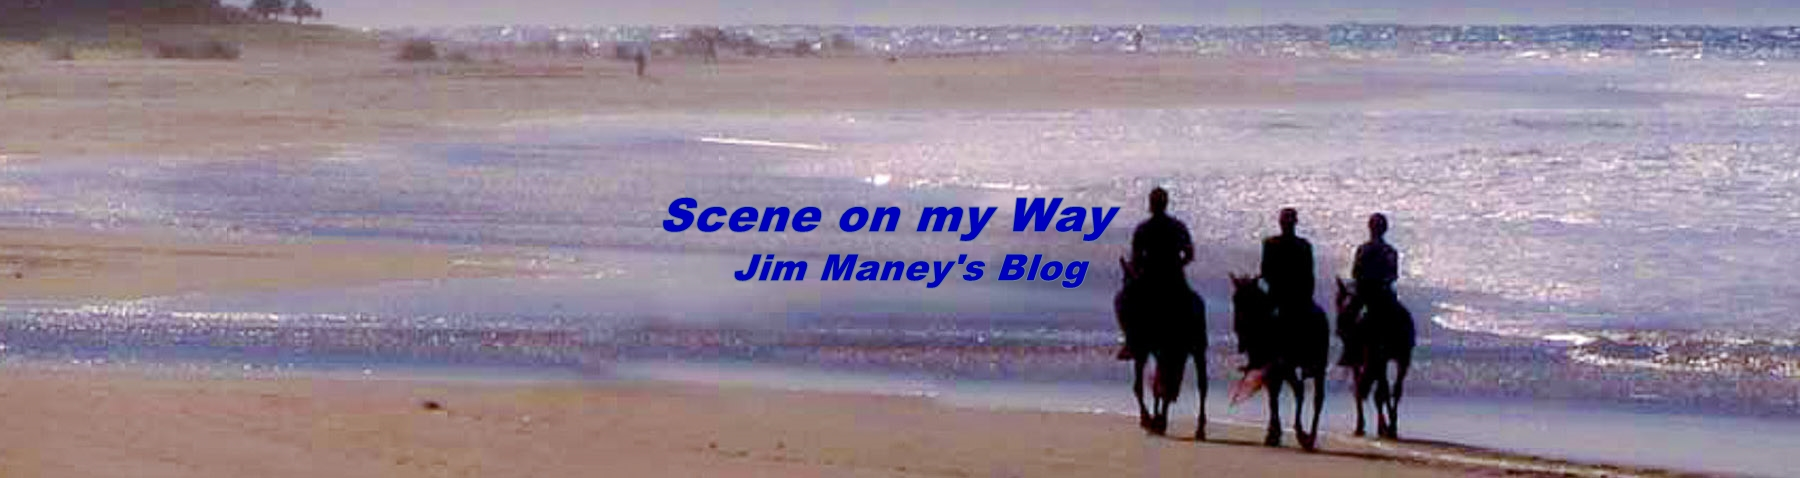 Jim Maney's Blog